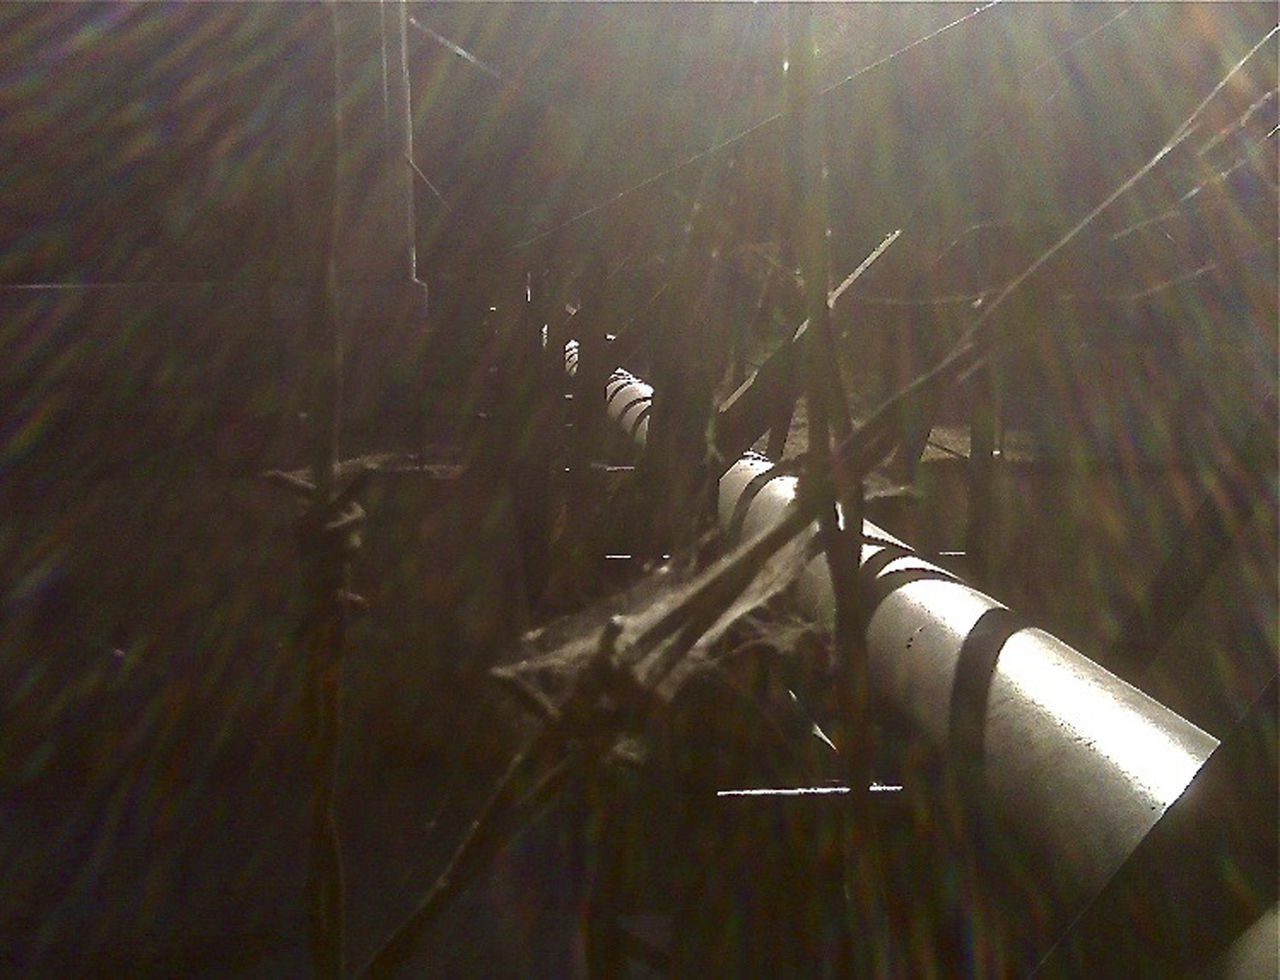 Barbed Wire Brown And Black Cobwebs Creek Crossing Dangerous Glare Of The Sun Hanging Vines Off Into Where? Steel Pipe